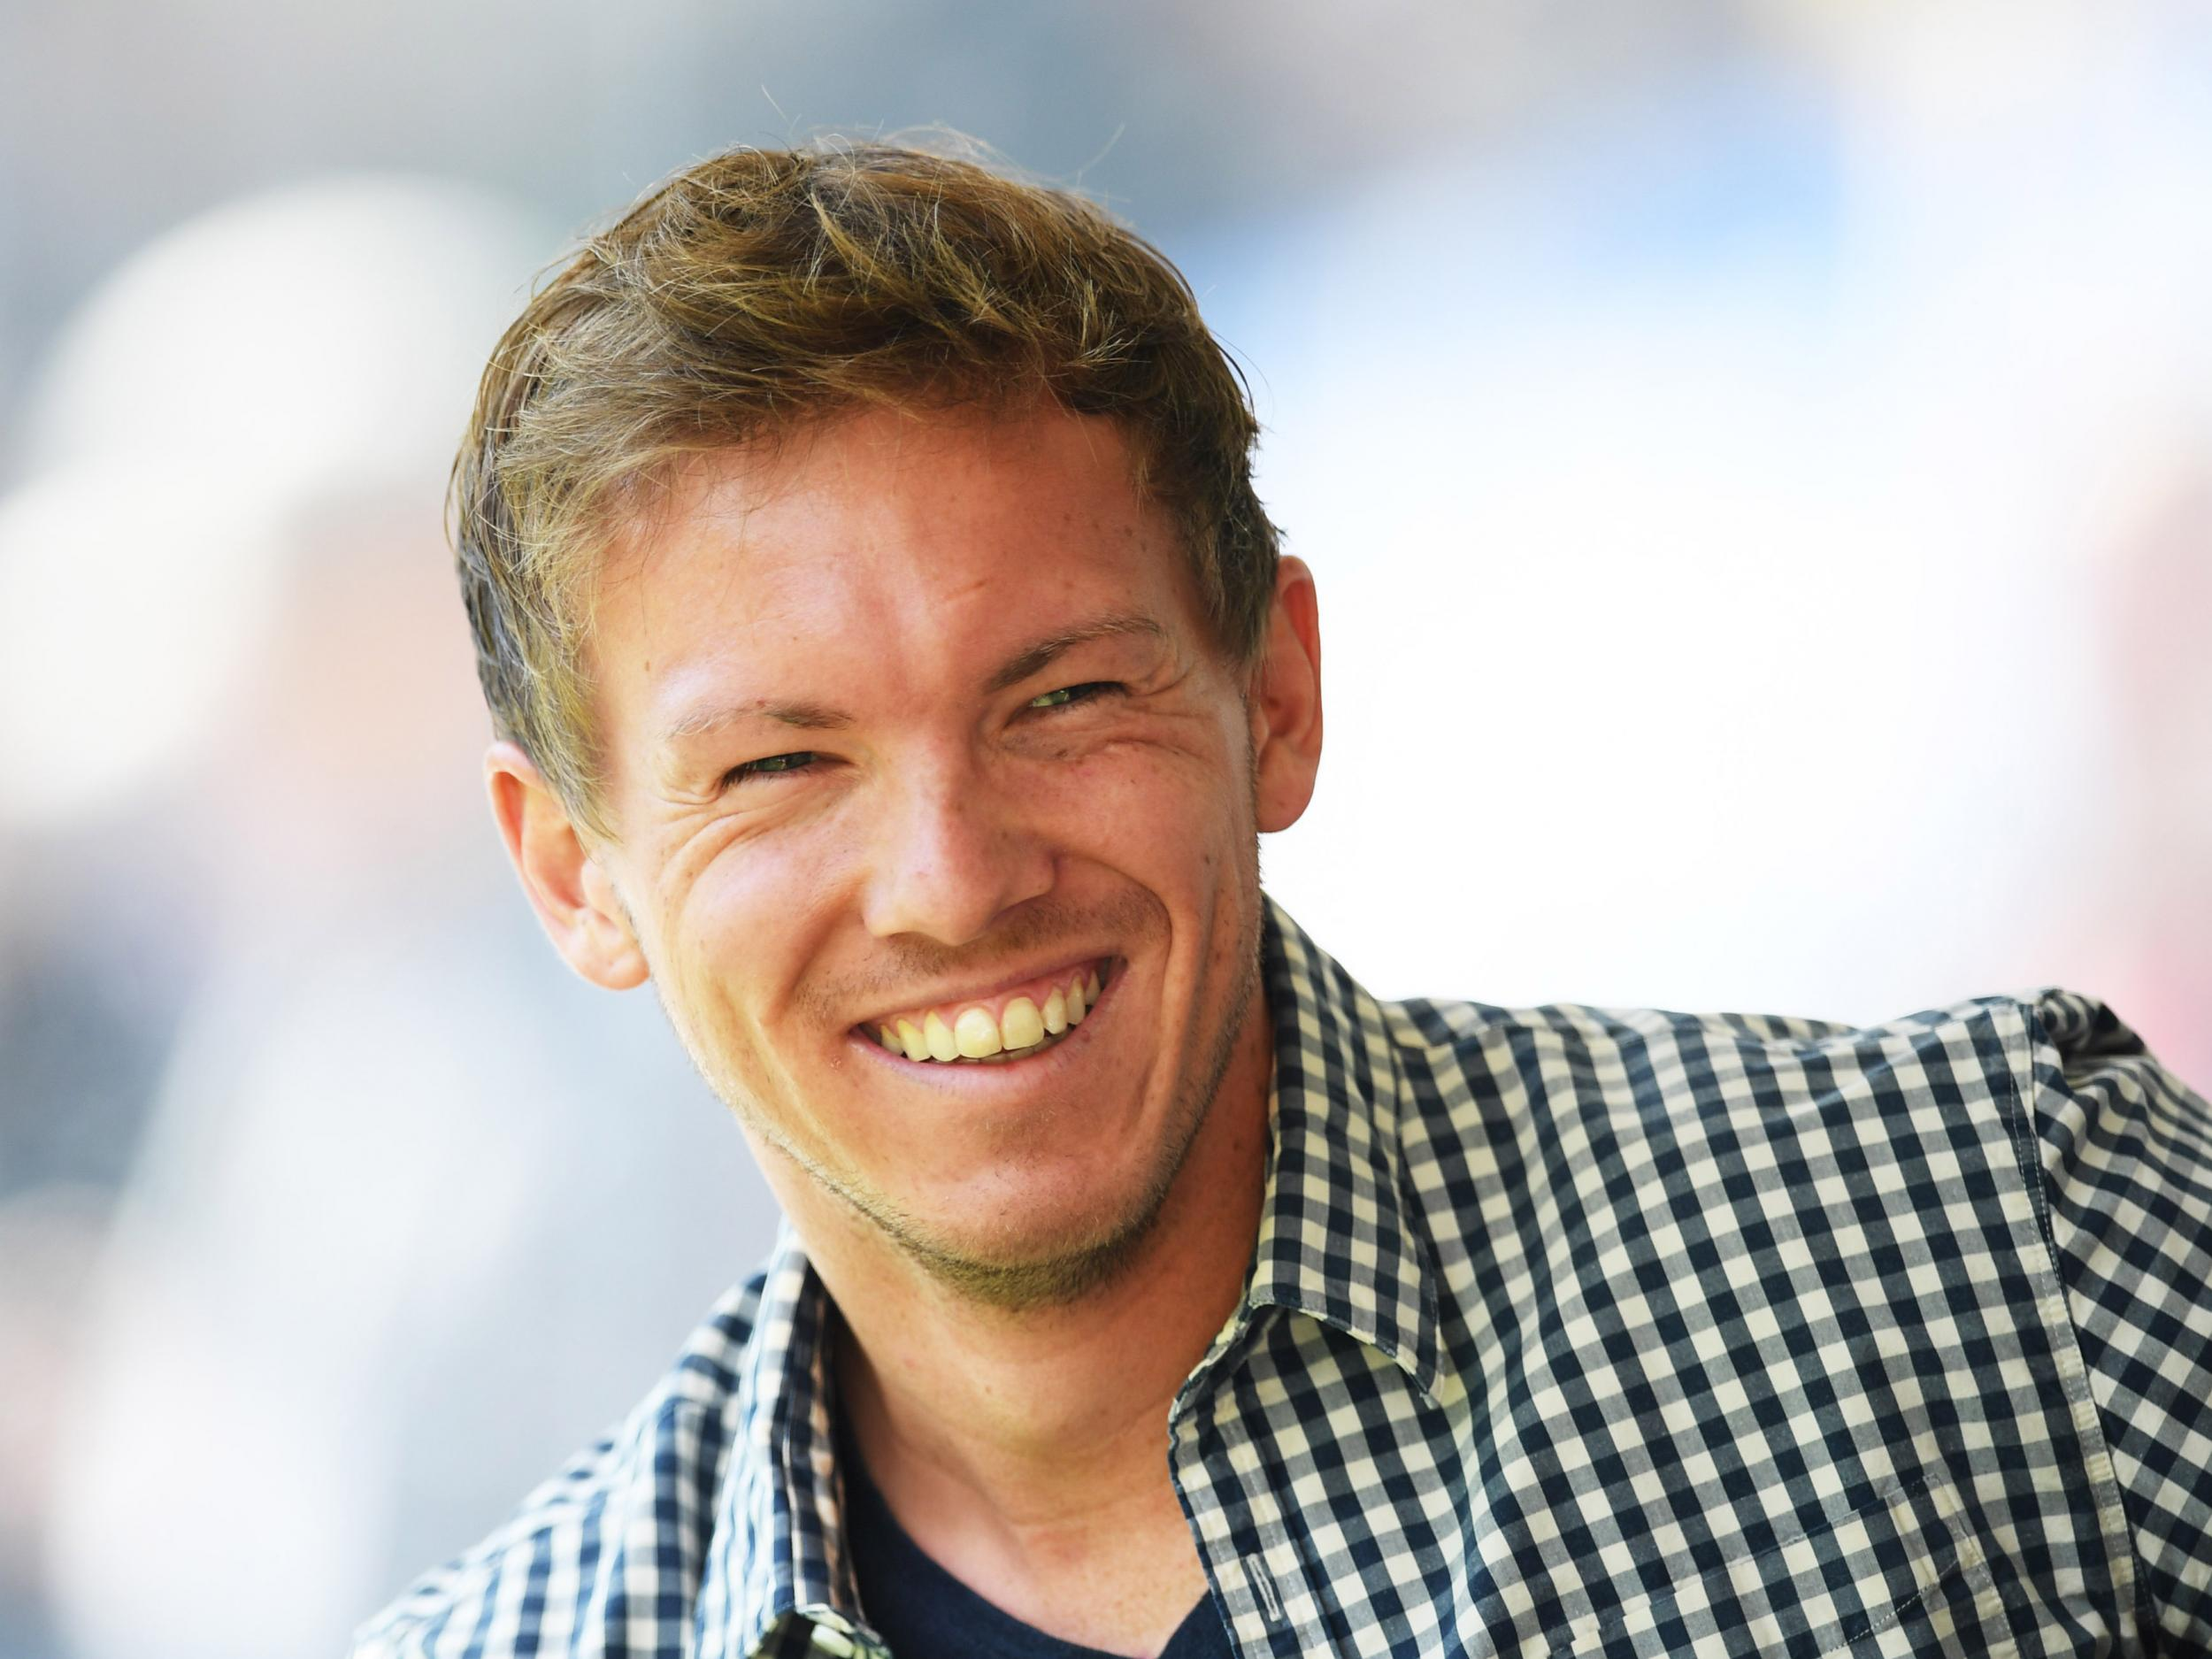 Julian Nagelsmann becomes first coach to join Juan Mata's Common Goal and donate 1% of salary to charity